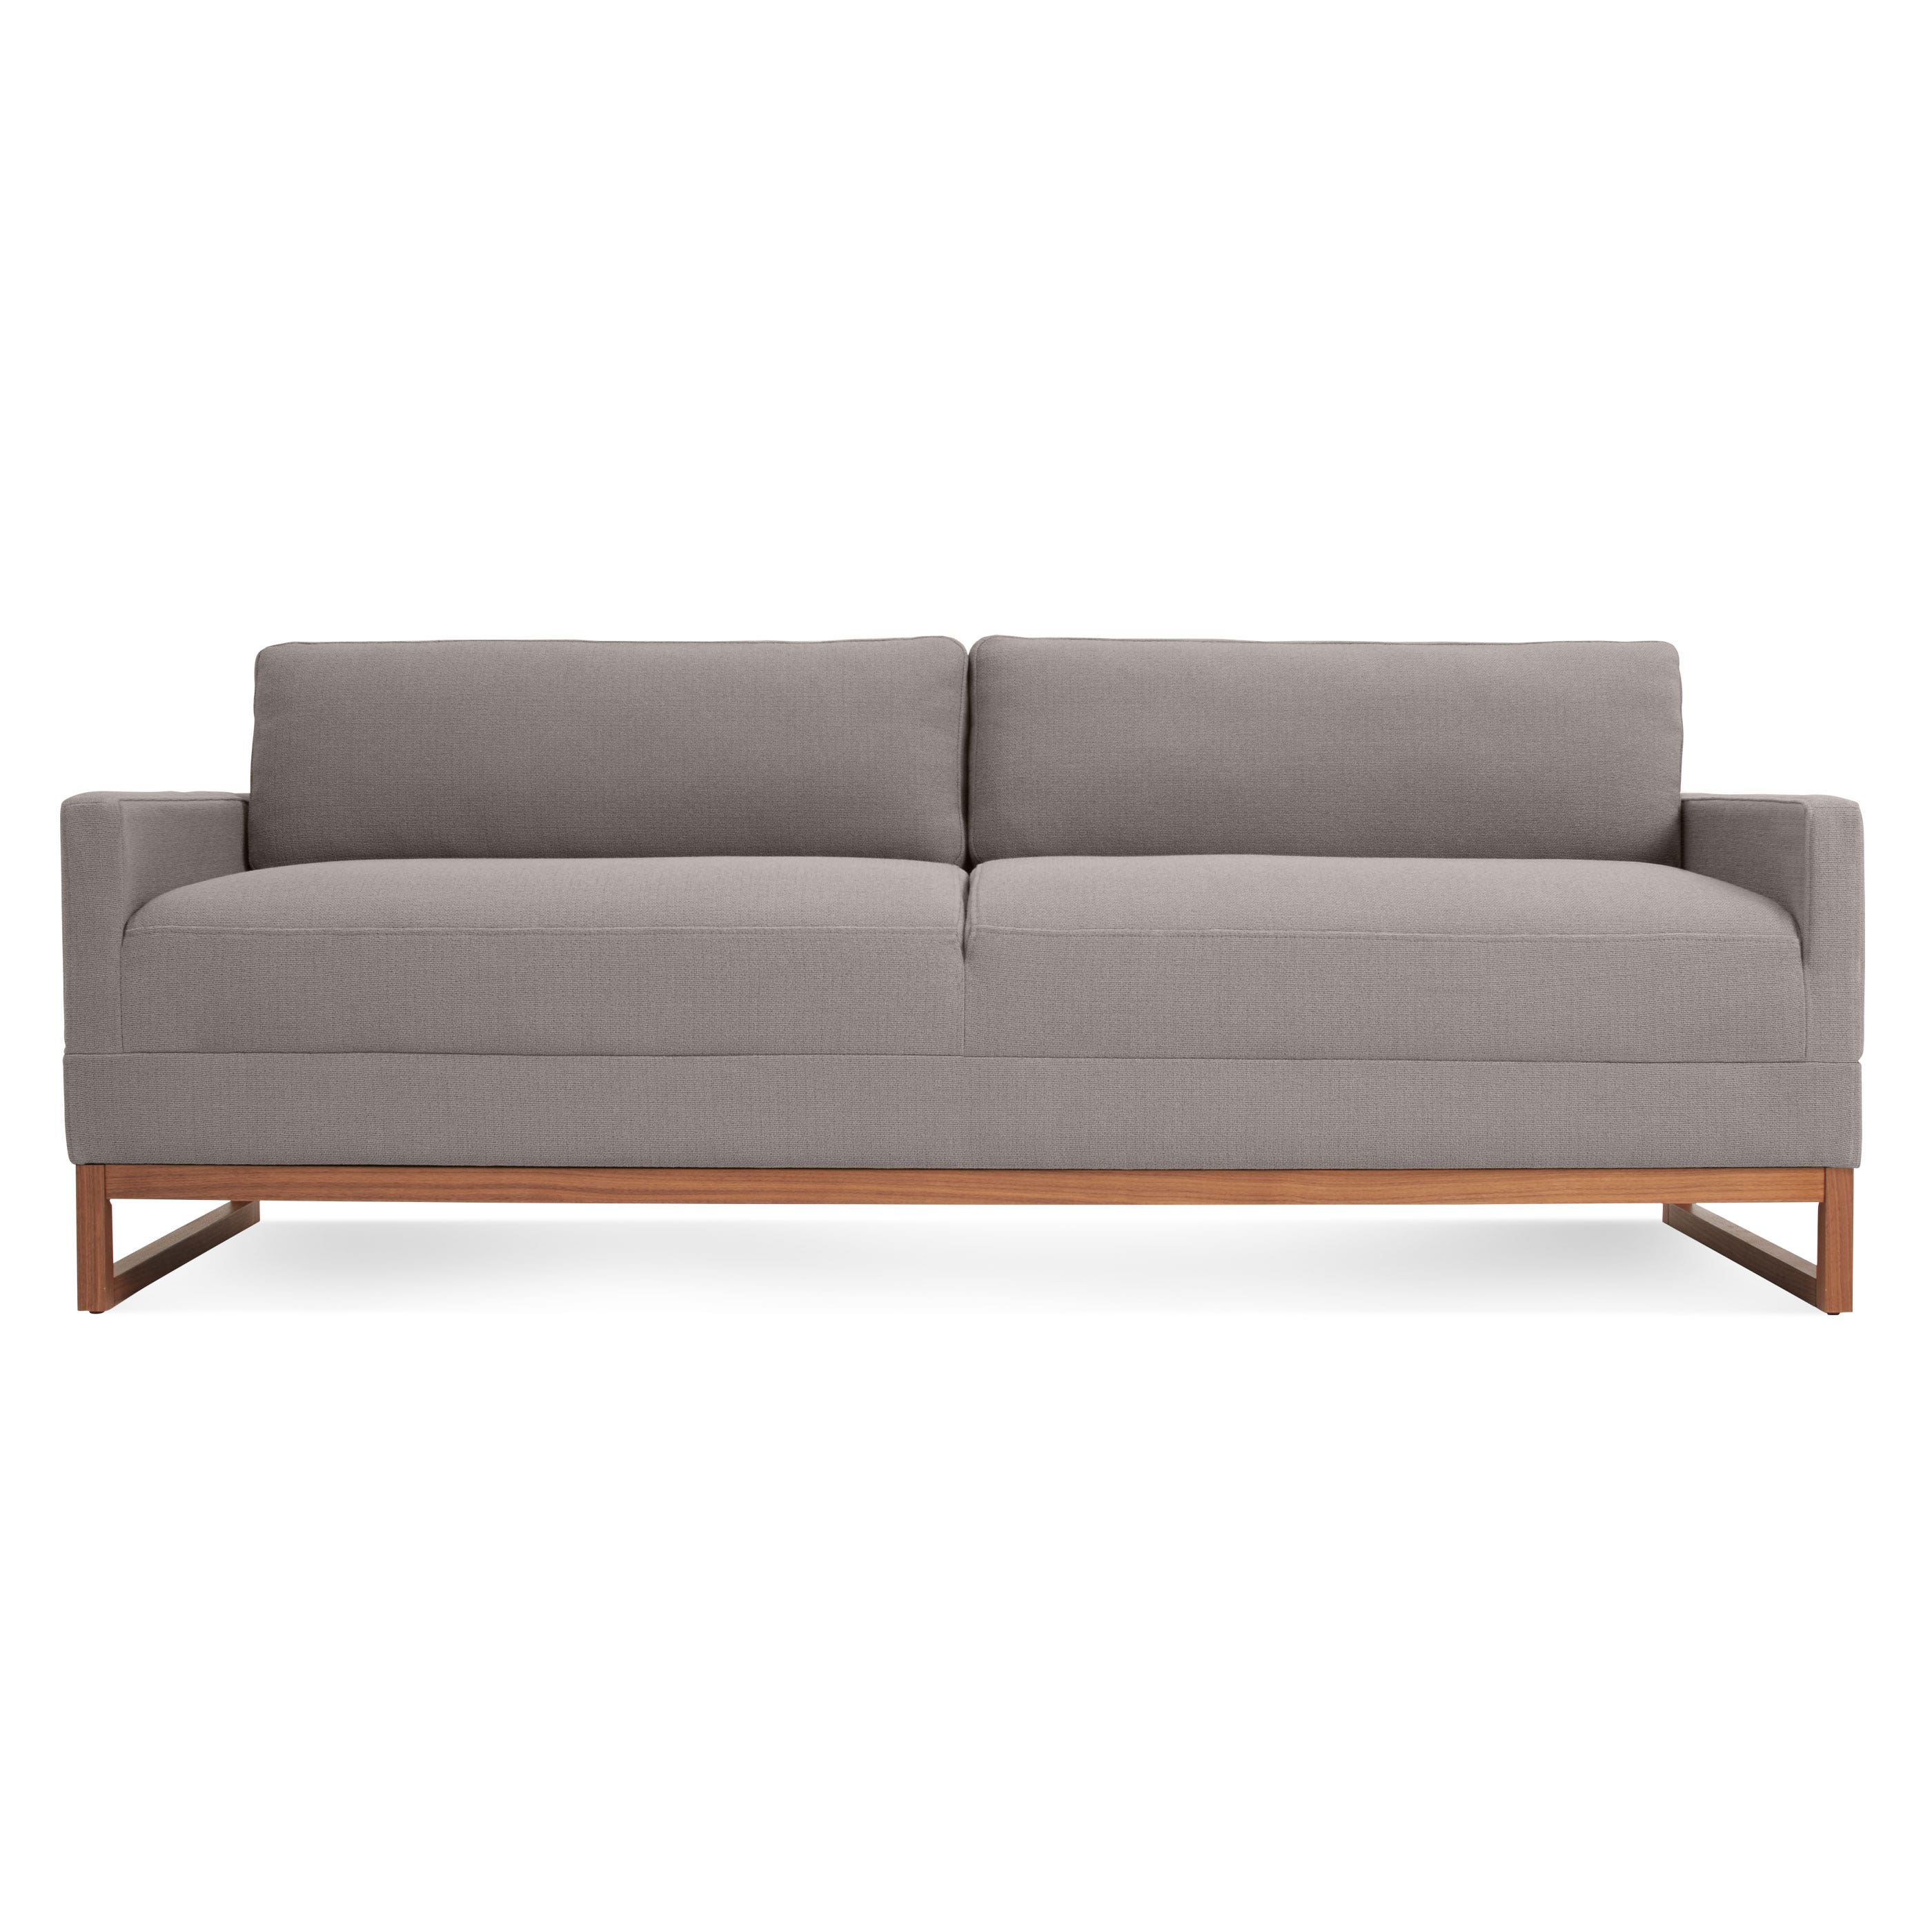 Sleeper Sofa Diplomat Convertible Sofa Blu Dot